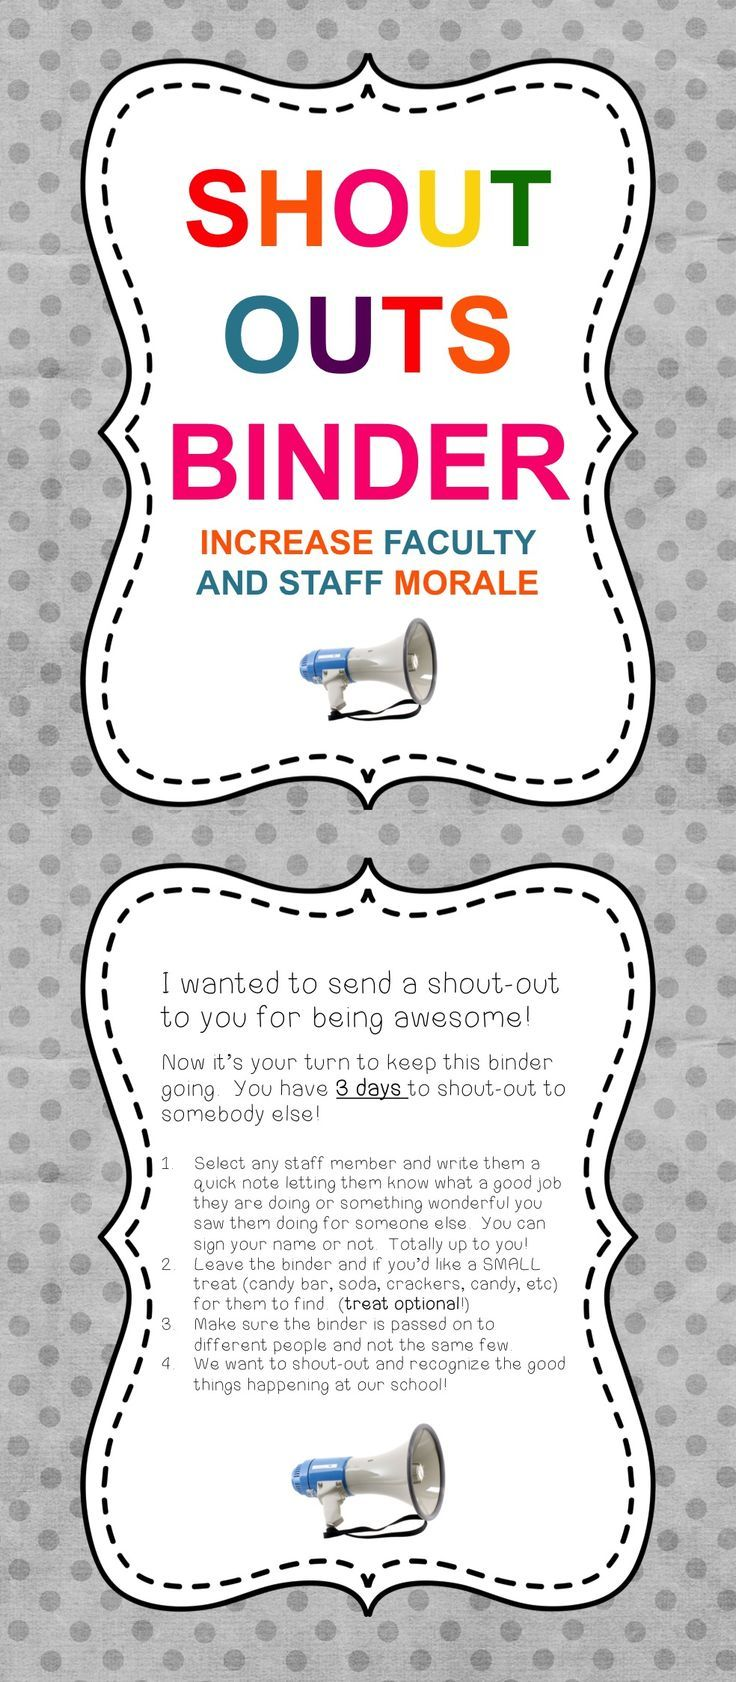 Raise staff morale in December when anxiety is rising. Shout outs for faculty morale.